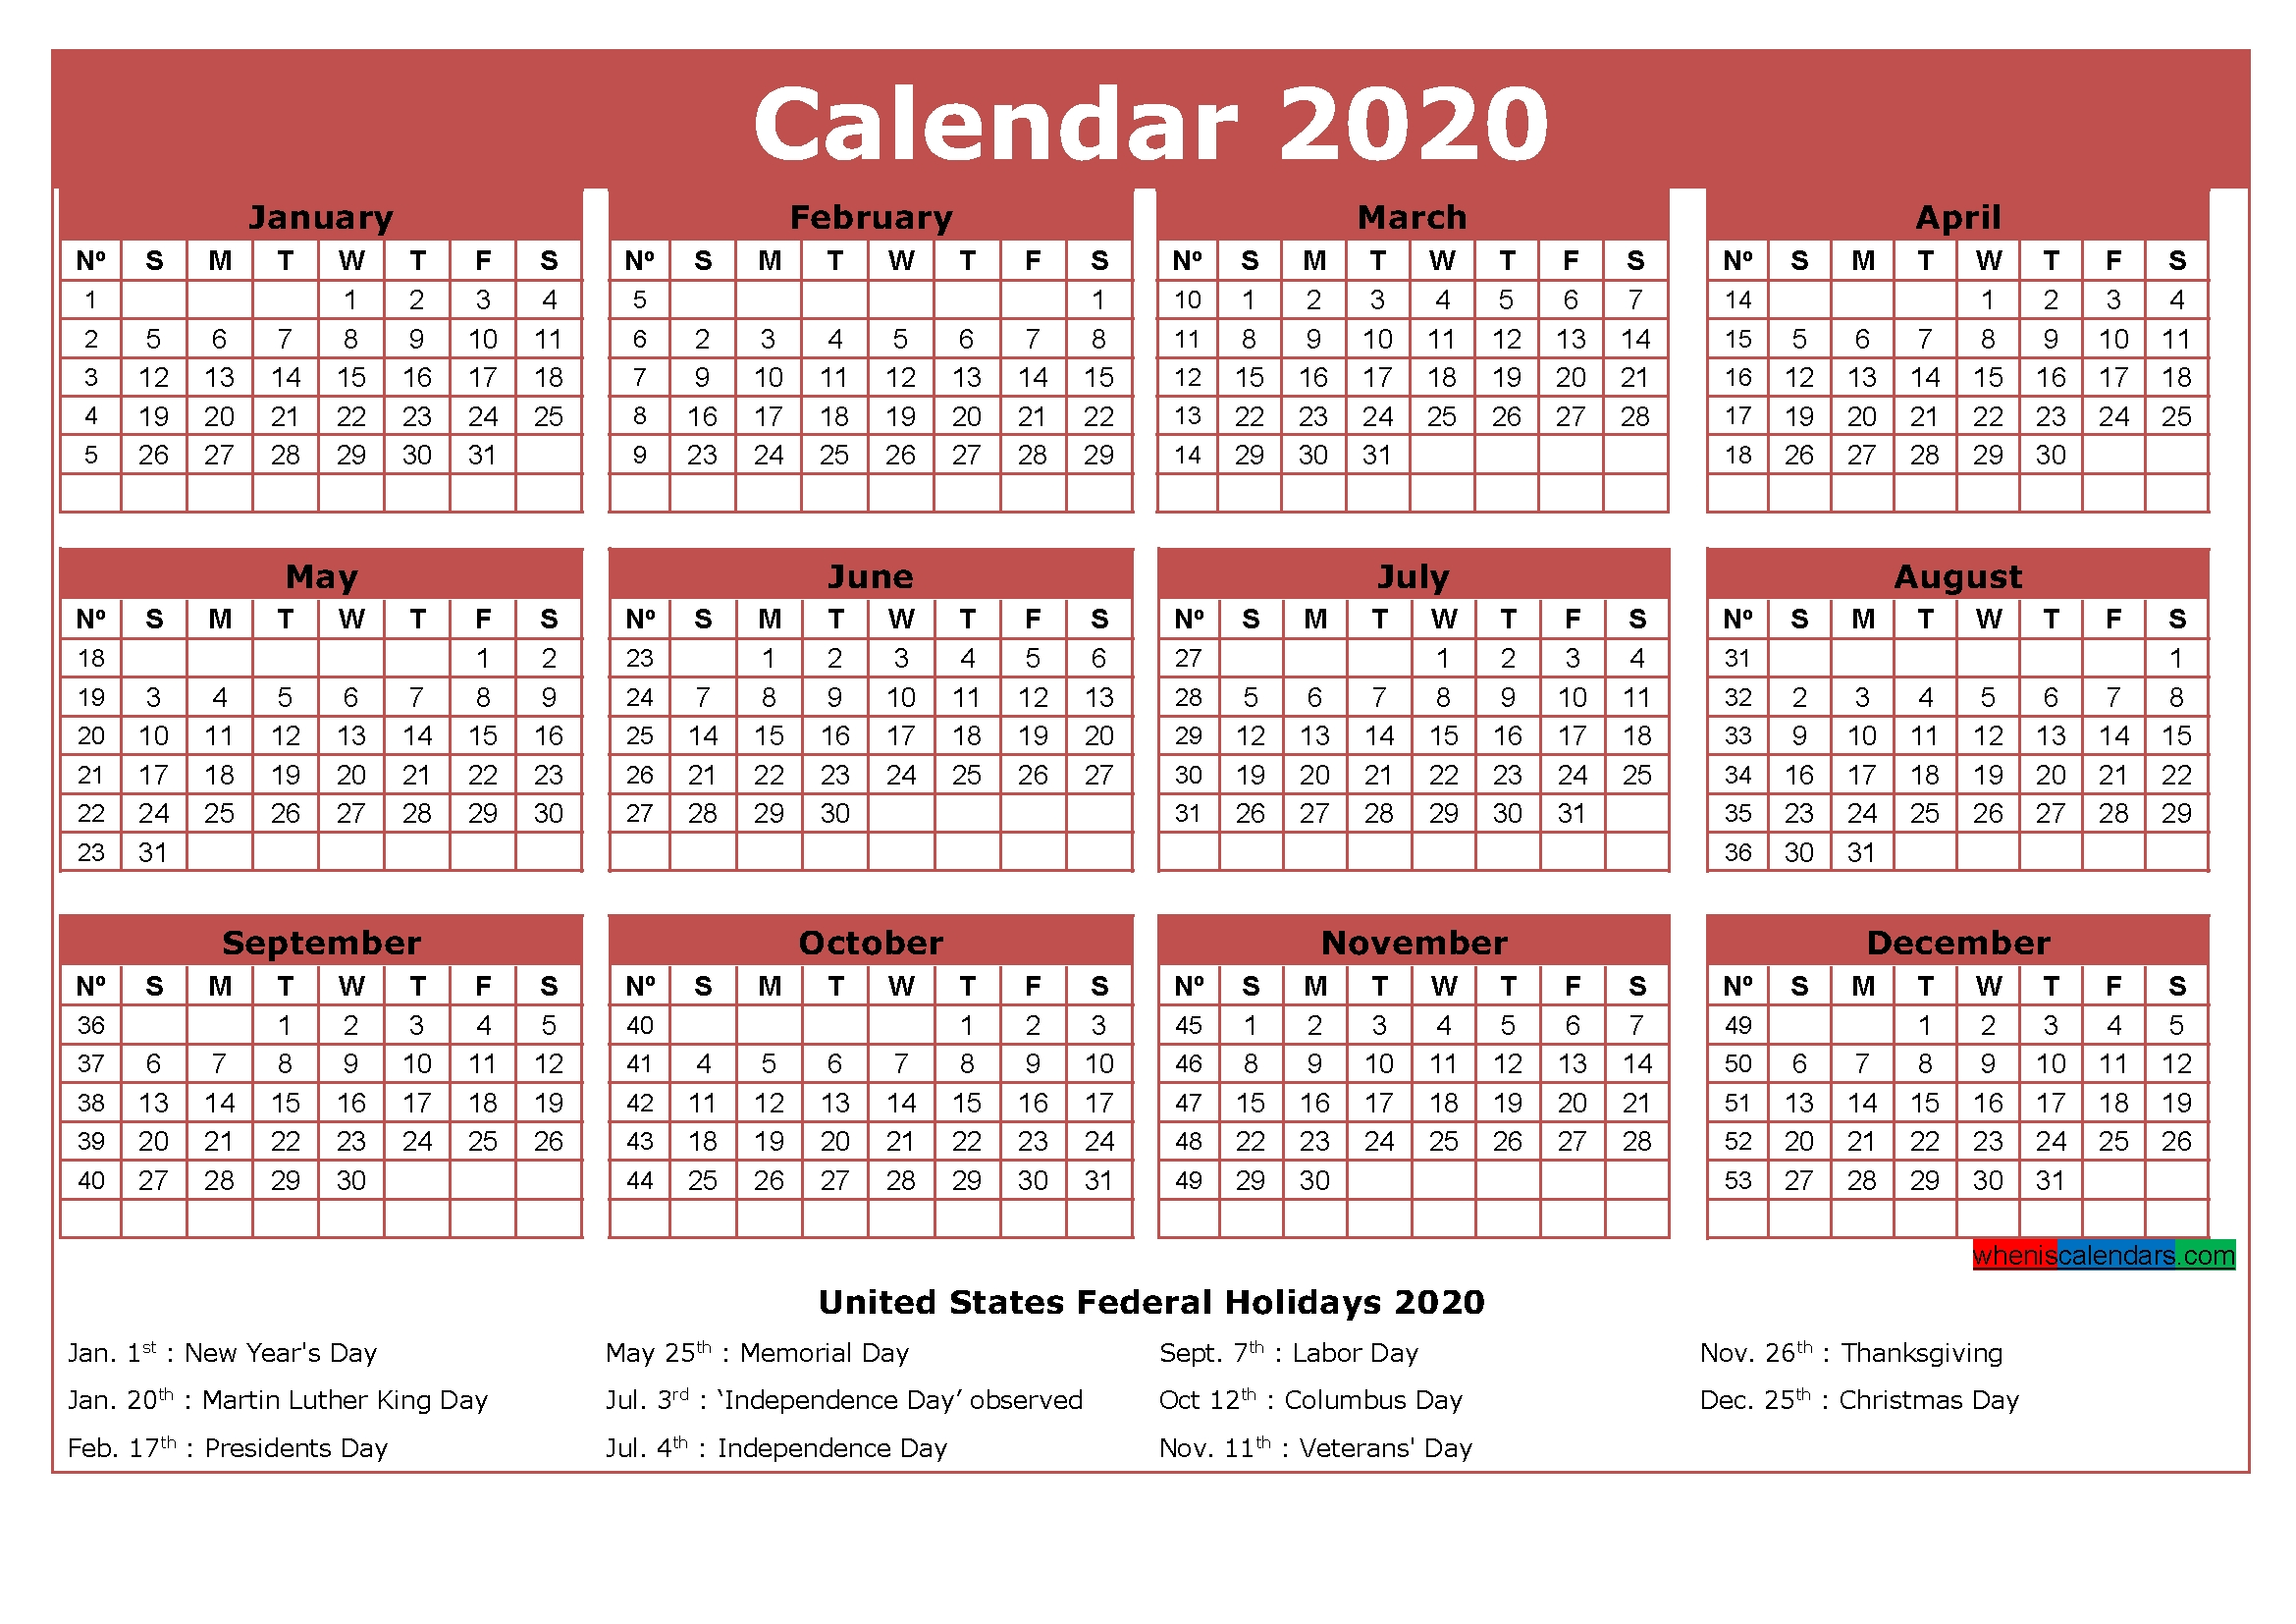 Free Printable Calendar With Holidays 2020 Word, Pdf | Free